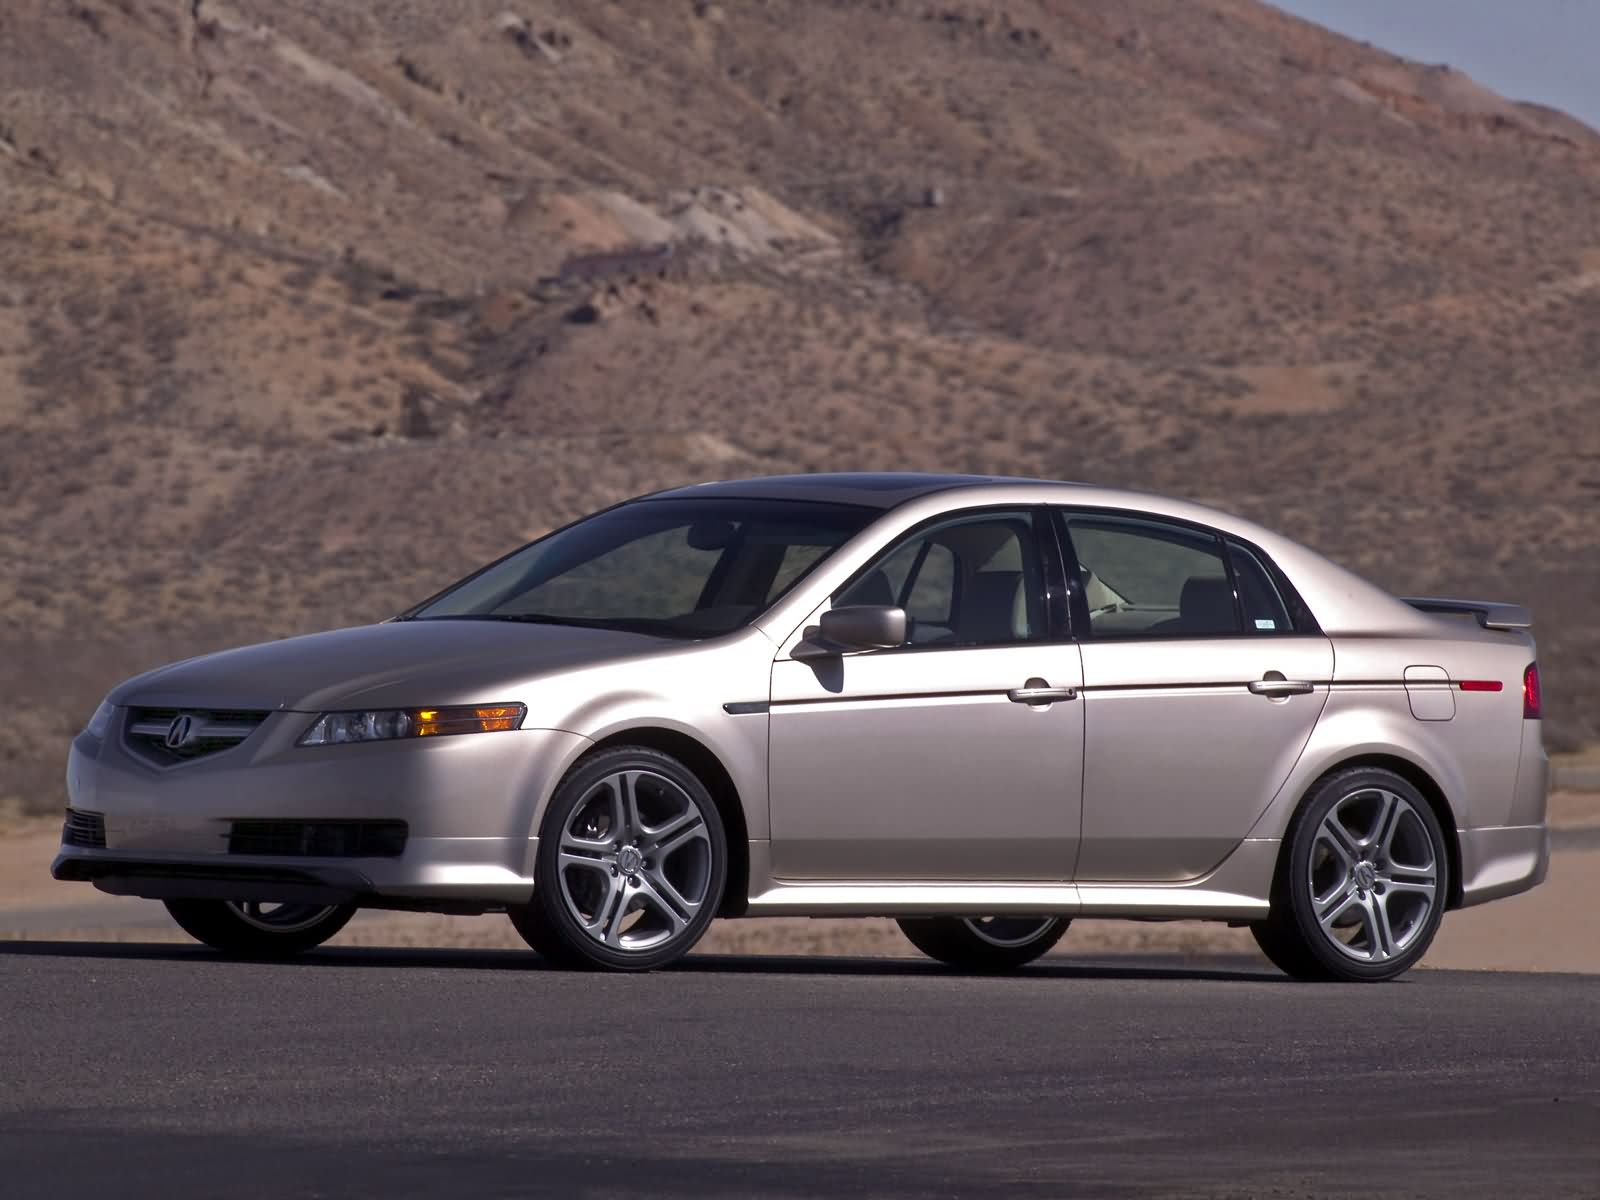 Acura TL A-SPEC photo 17895